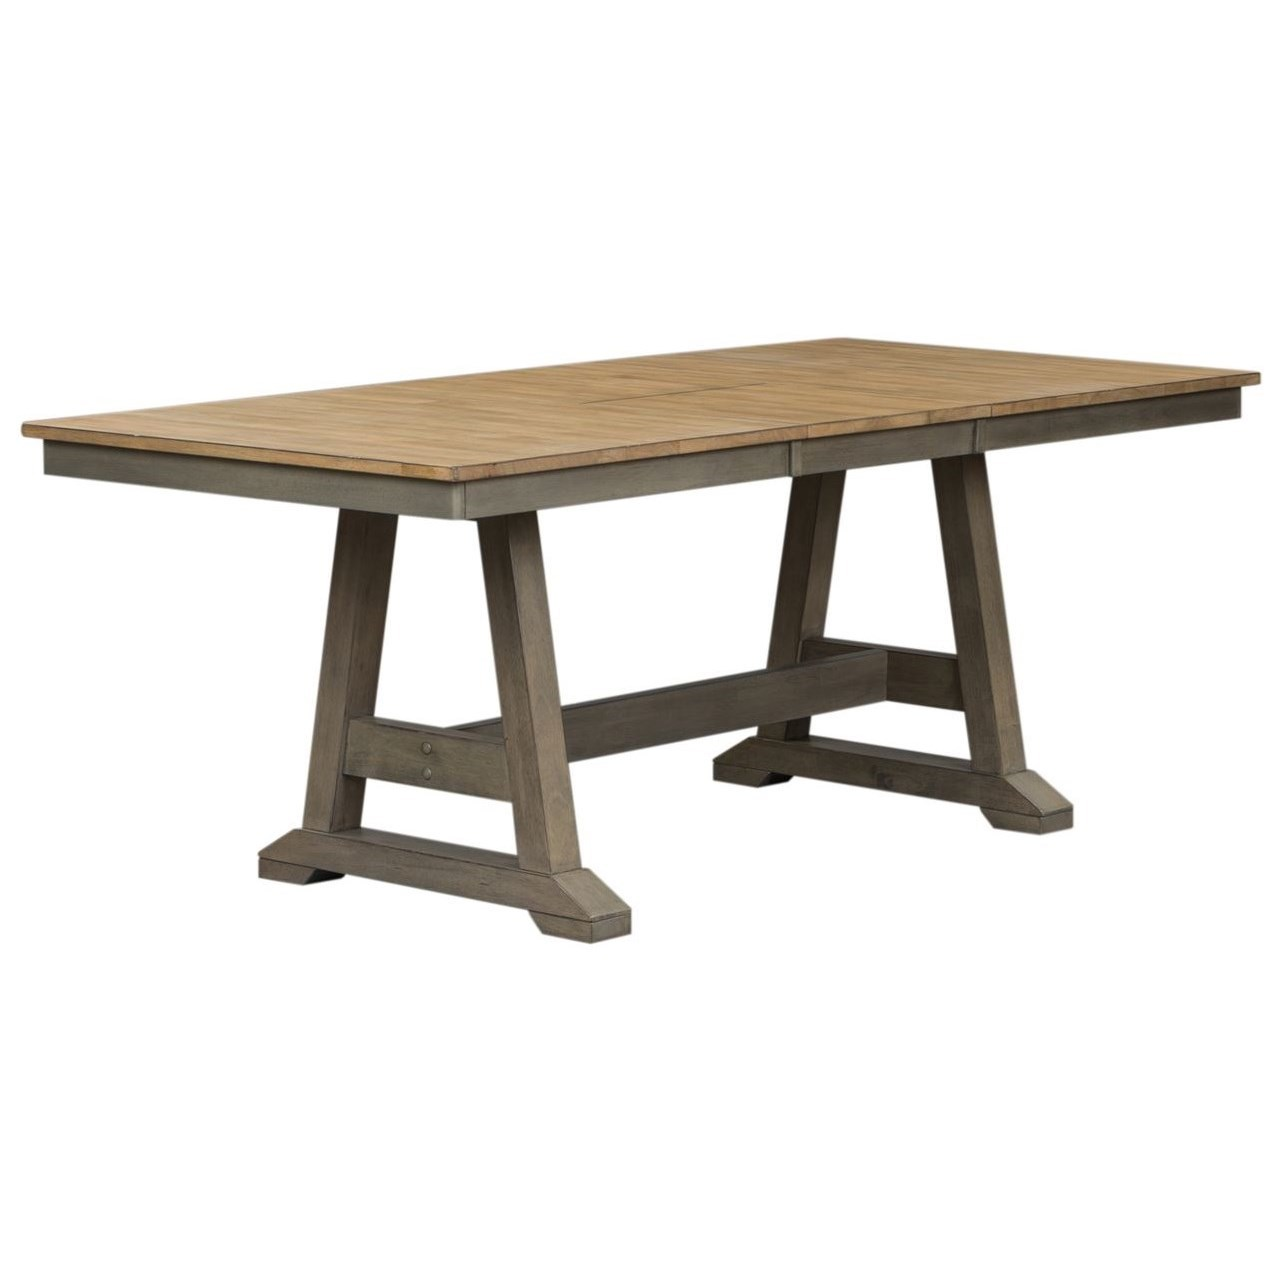 Lindsey Farm Trestle Table by Liberty Furniture at Darvin Furniture